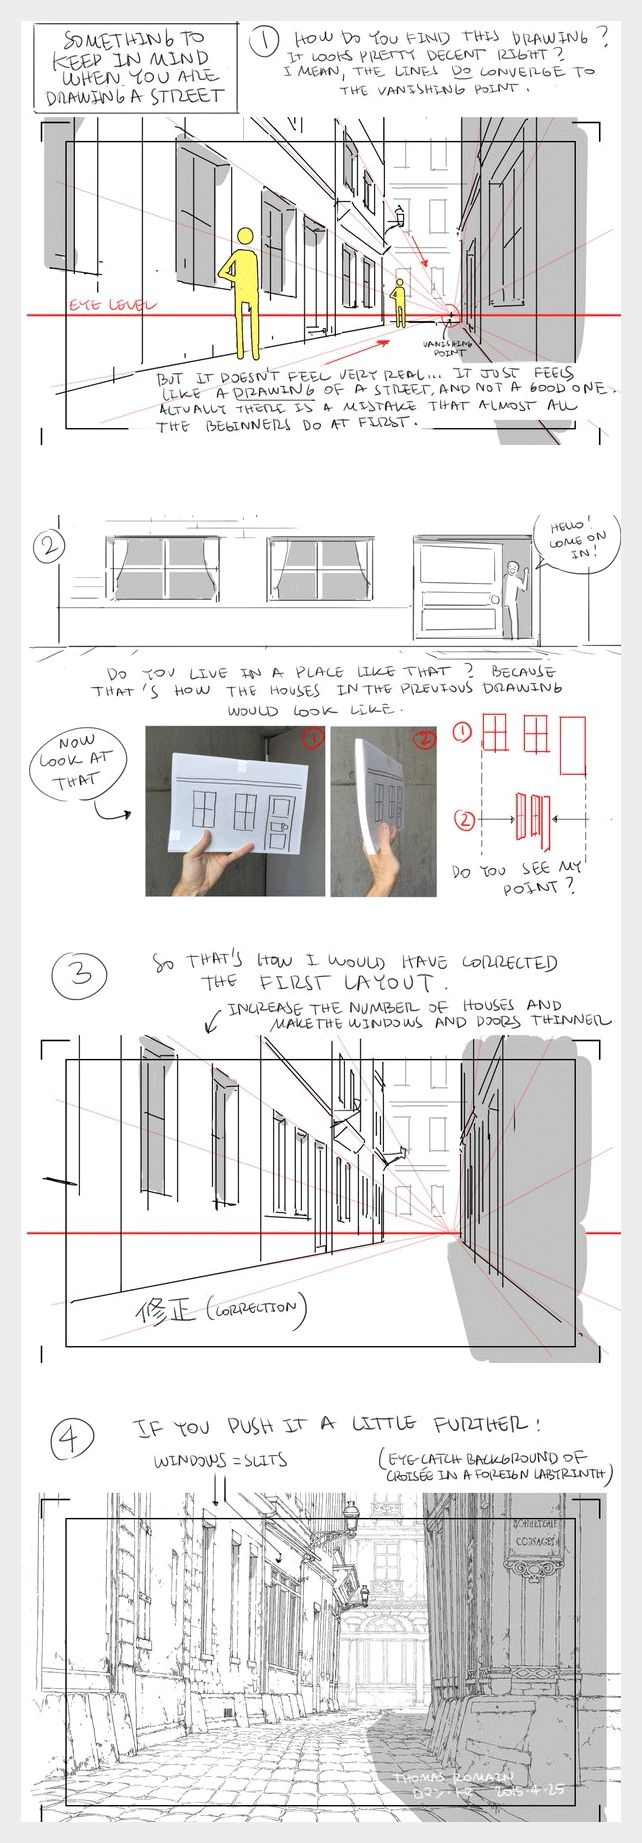 How to draw a street - by Thomas Romain (one of the few foreigners working in the anime industry in Japan)